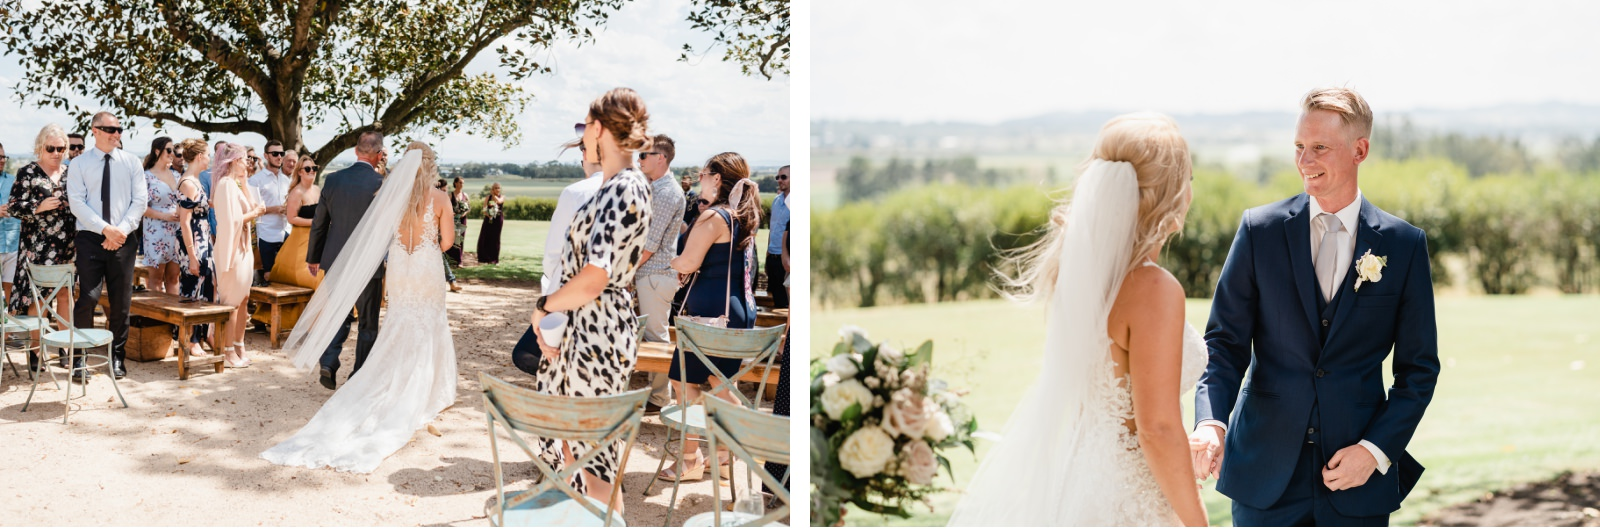 wallalong-house-hunter-valley-wedding-photographer-29